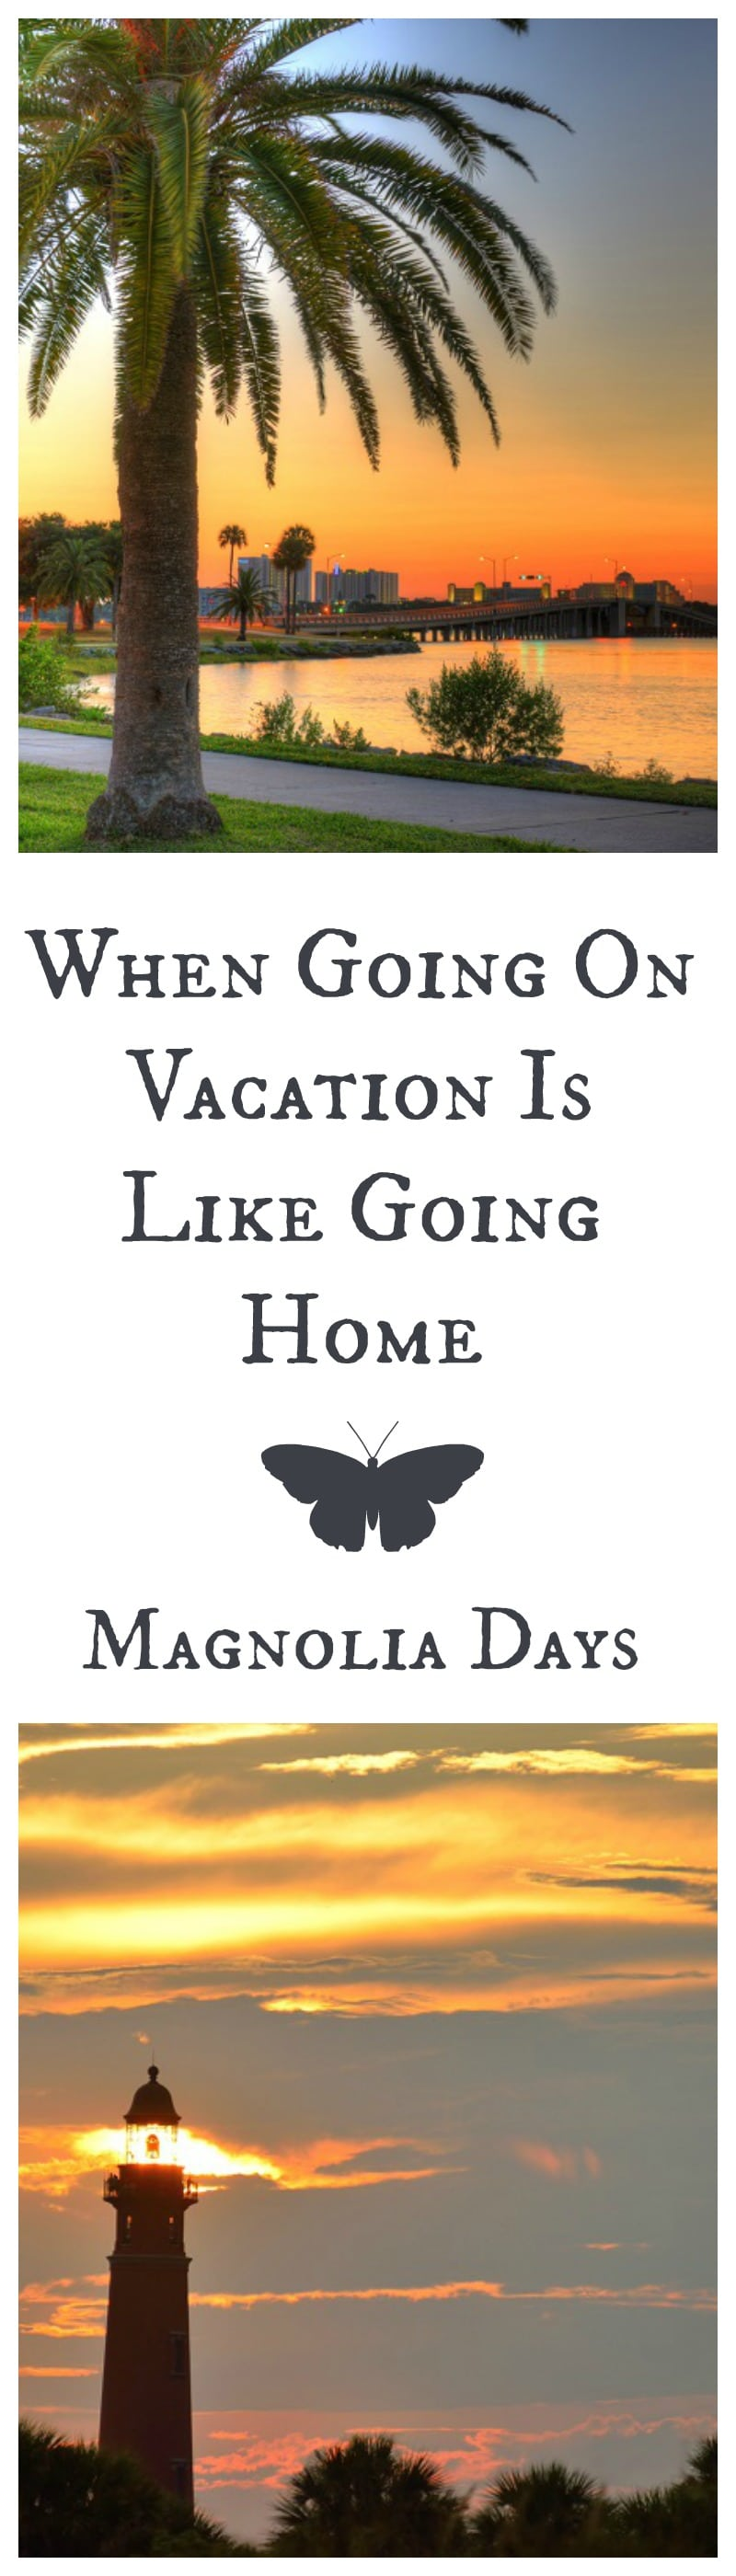 I spent many years in Daytona Beach, and I love to go back for the beaches, shopping, dining, and other activities.  Going on vacation is like going home.